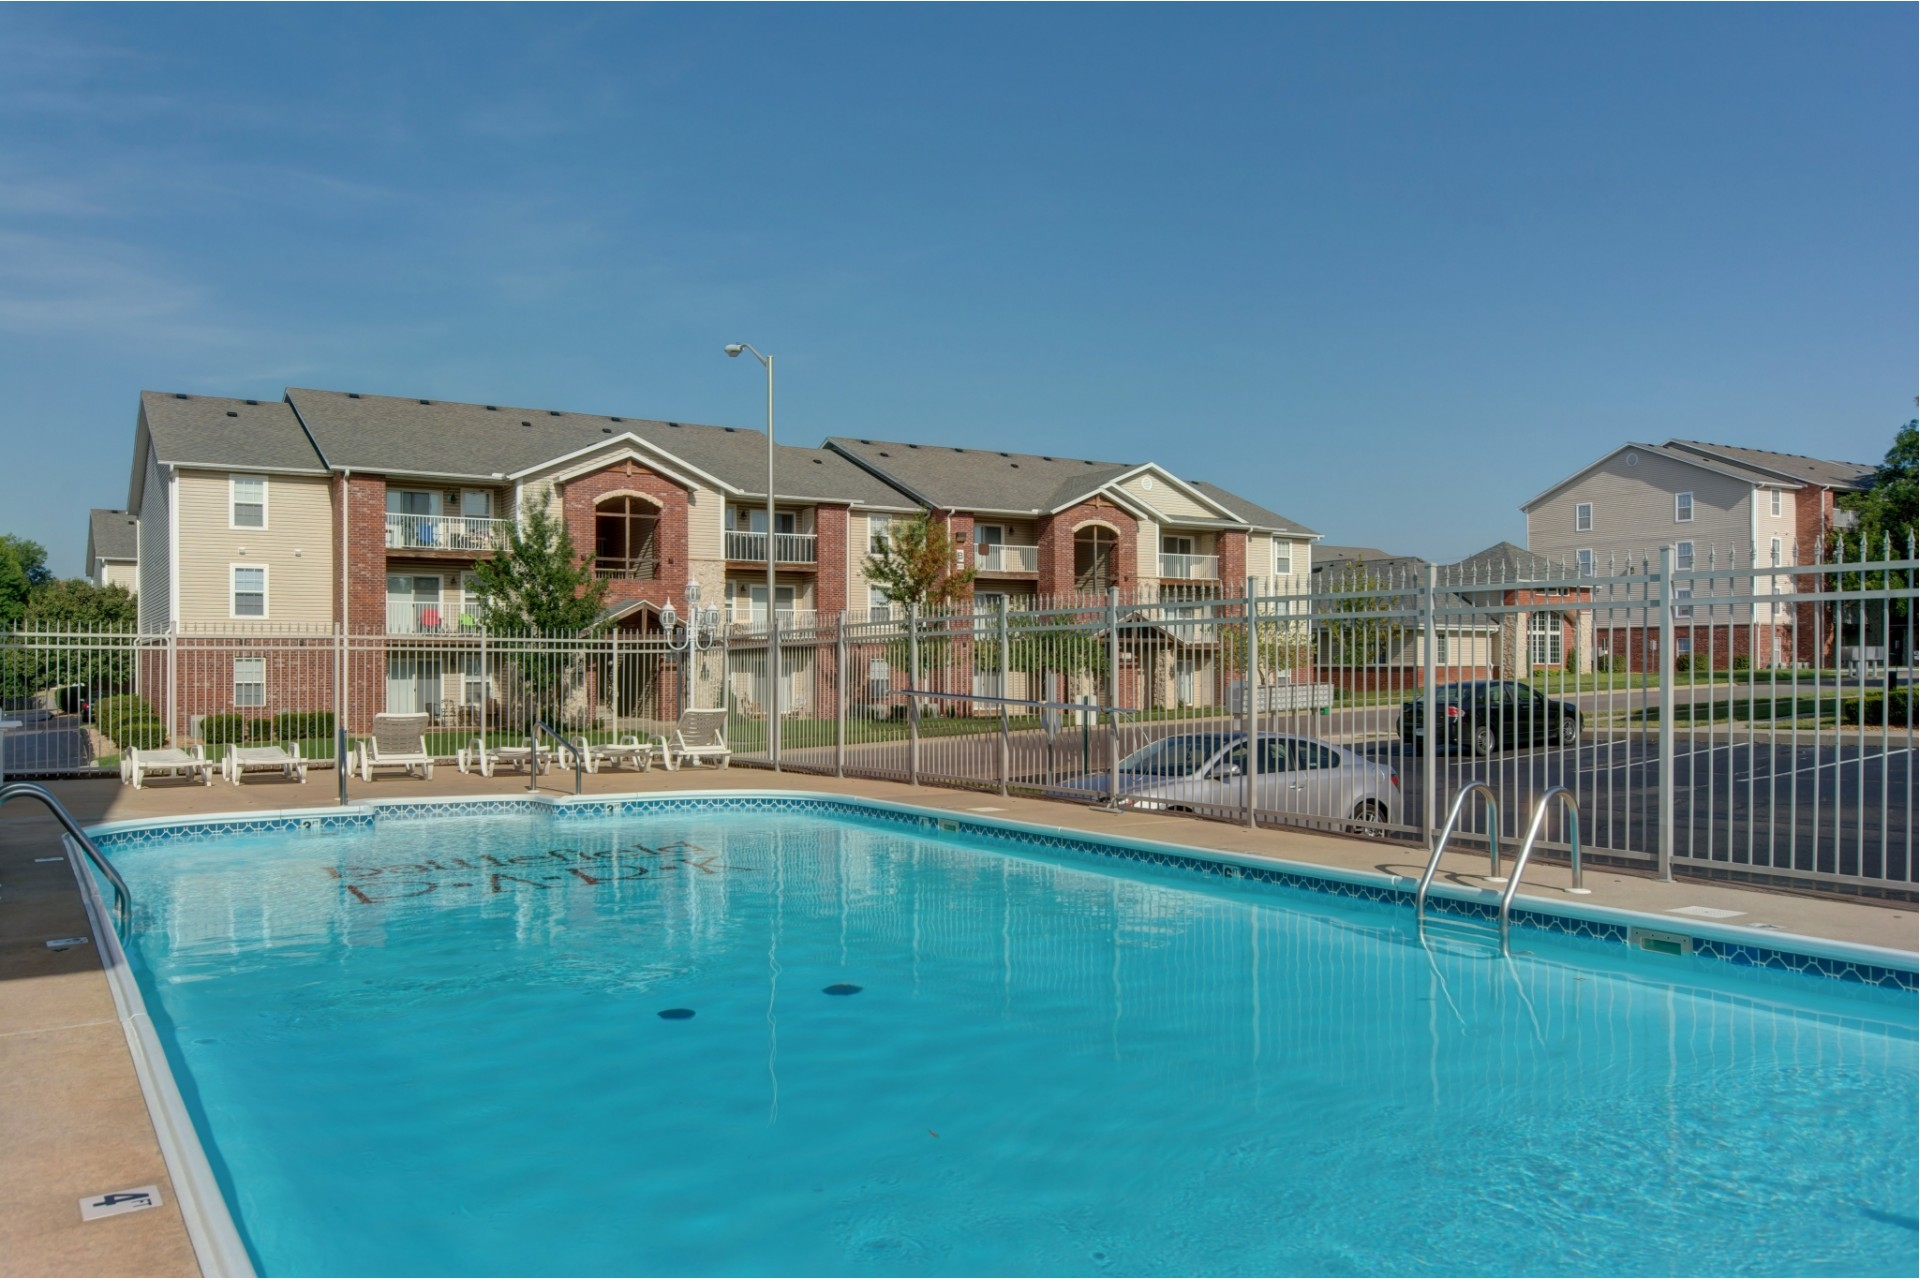 outdoor swimming pool and exterior apartment buildings at Battlefield Park